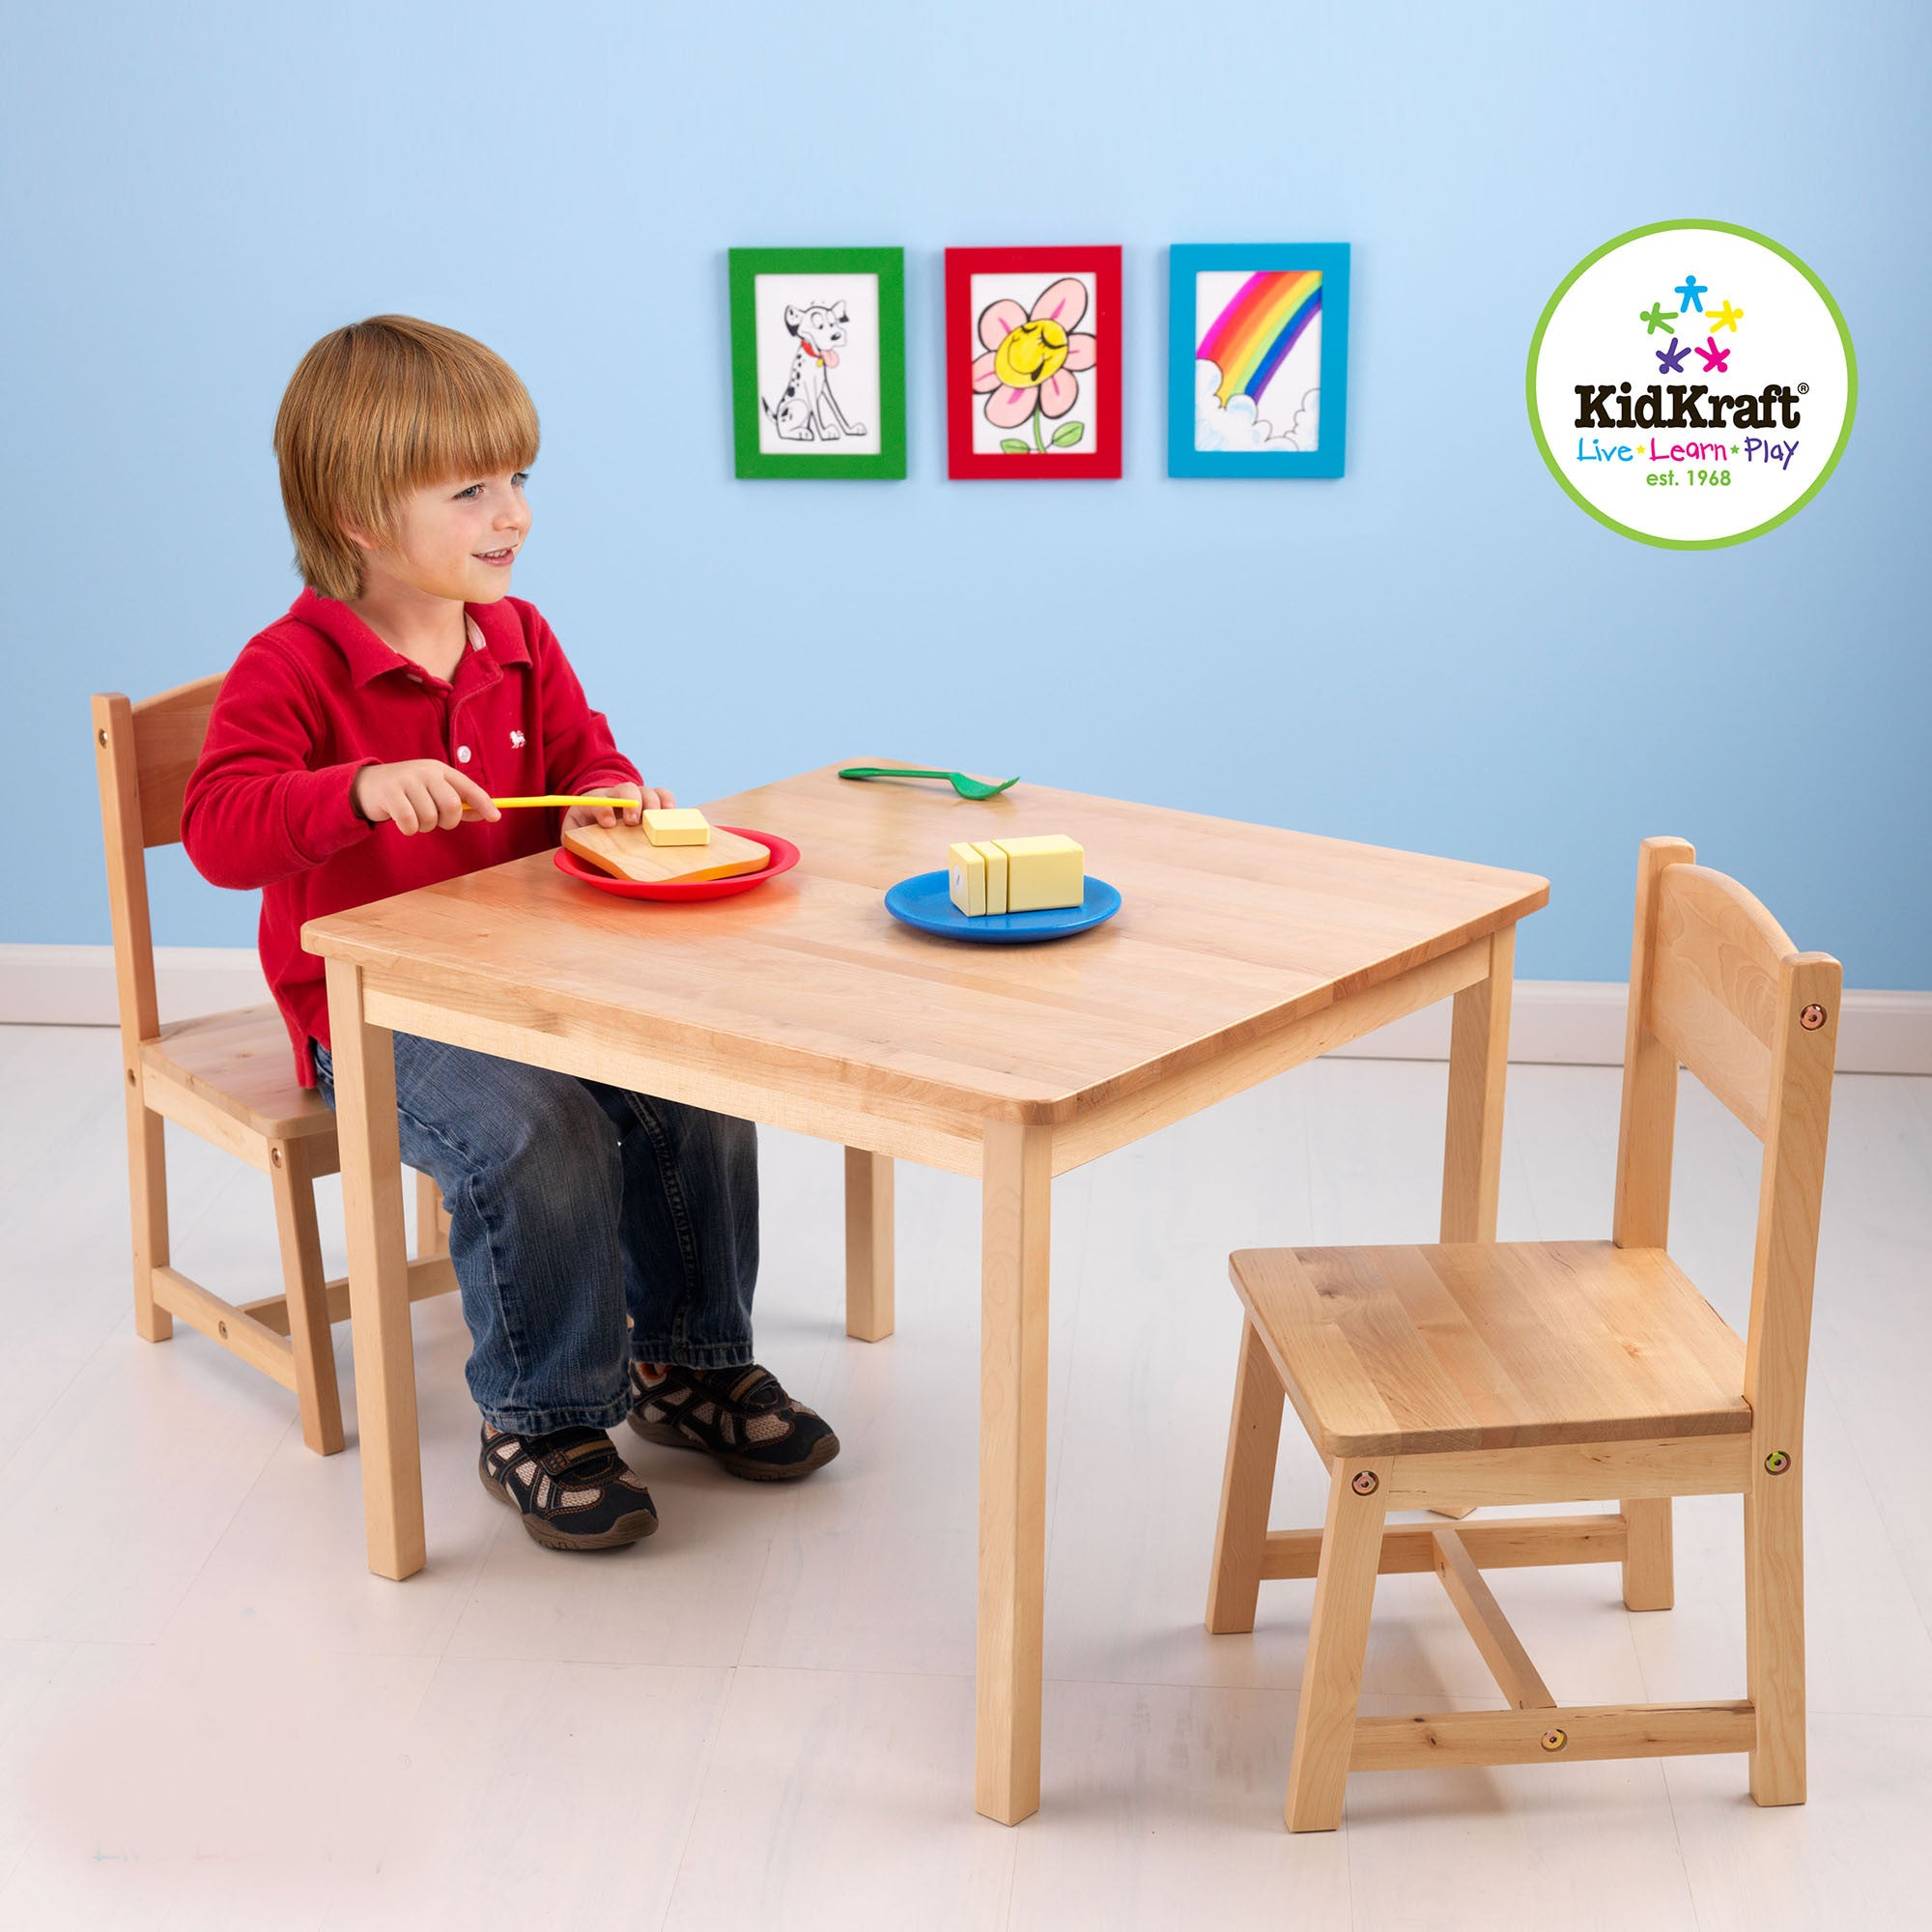 Kidkraft Aspen Table and Chairs Kidkraft Baby and Toddler Furniture Sets Natural at Little Earth Nest Eco Shop